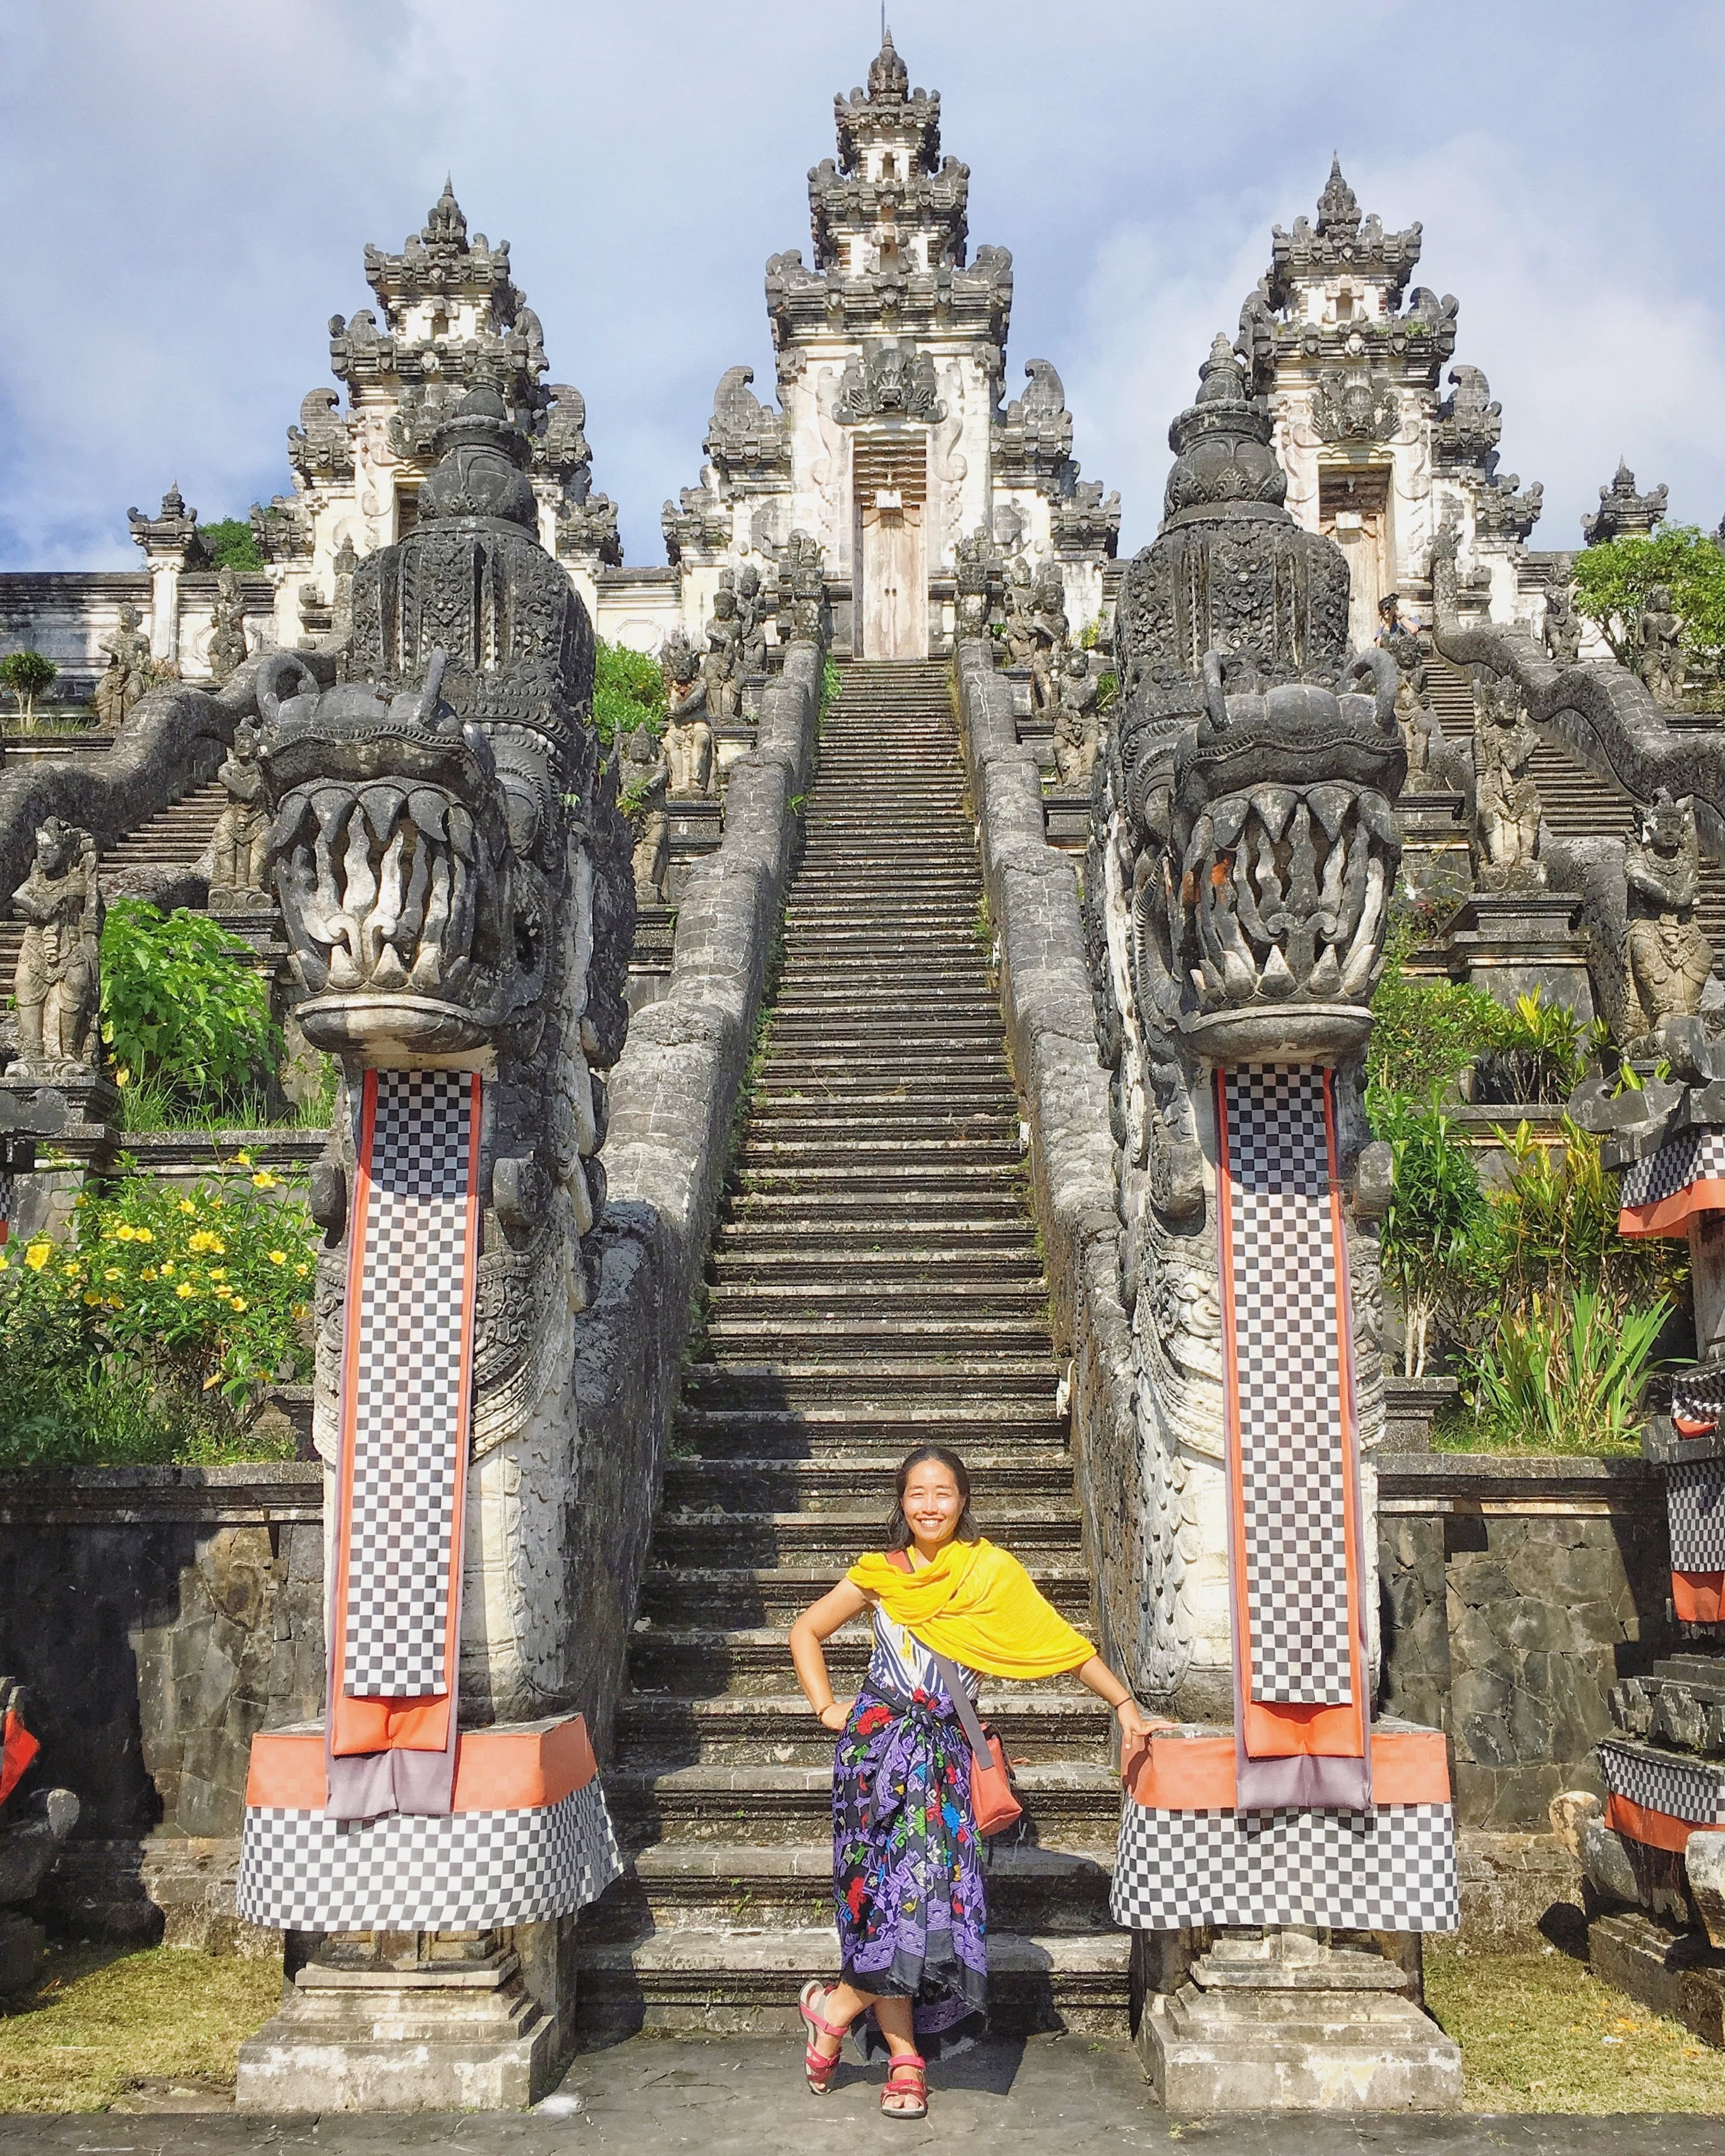 Lempuyang Temple in Bali - skirt and shawl are provided.